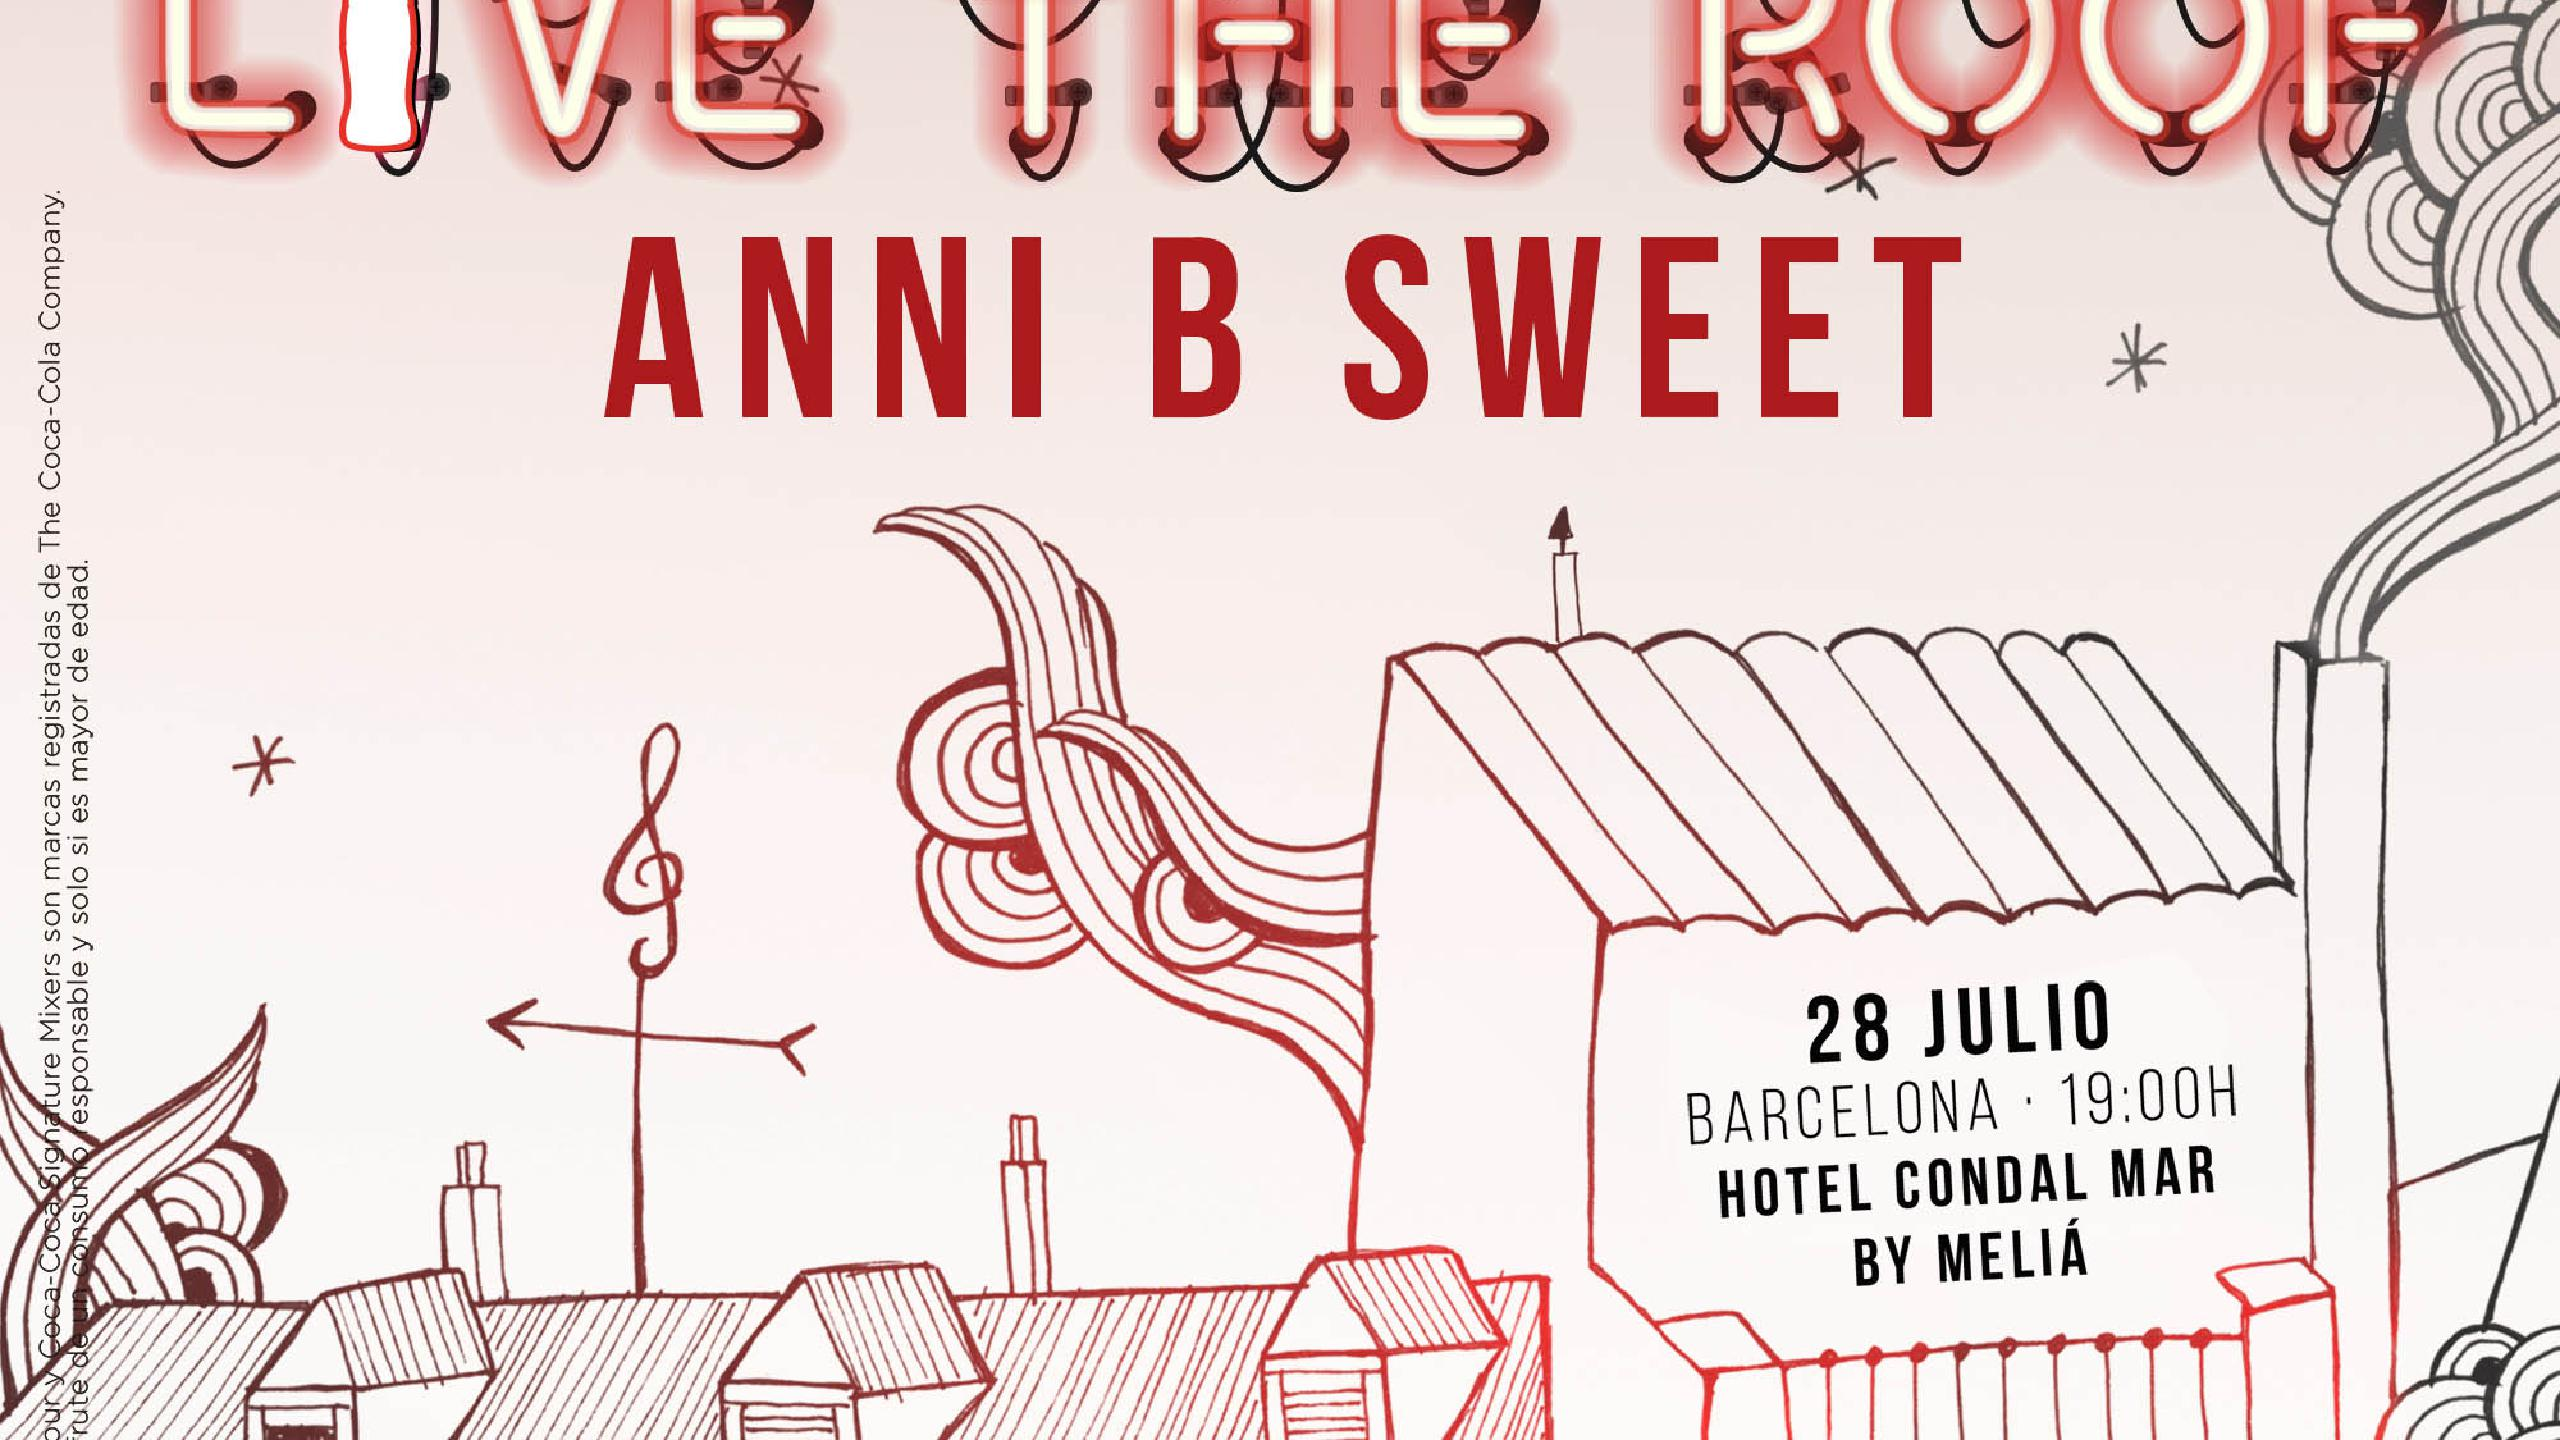 Anni B Sweet Concert Tickets For Hotel Condal Mar By Meliá